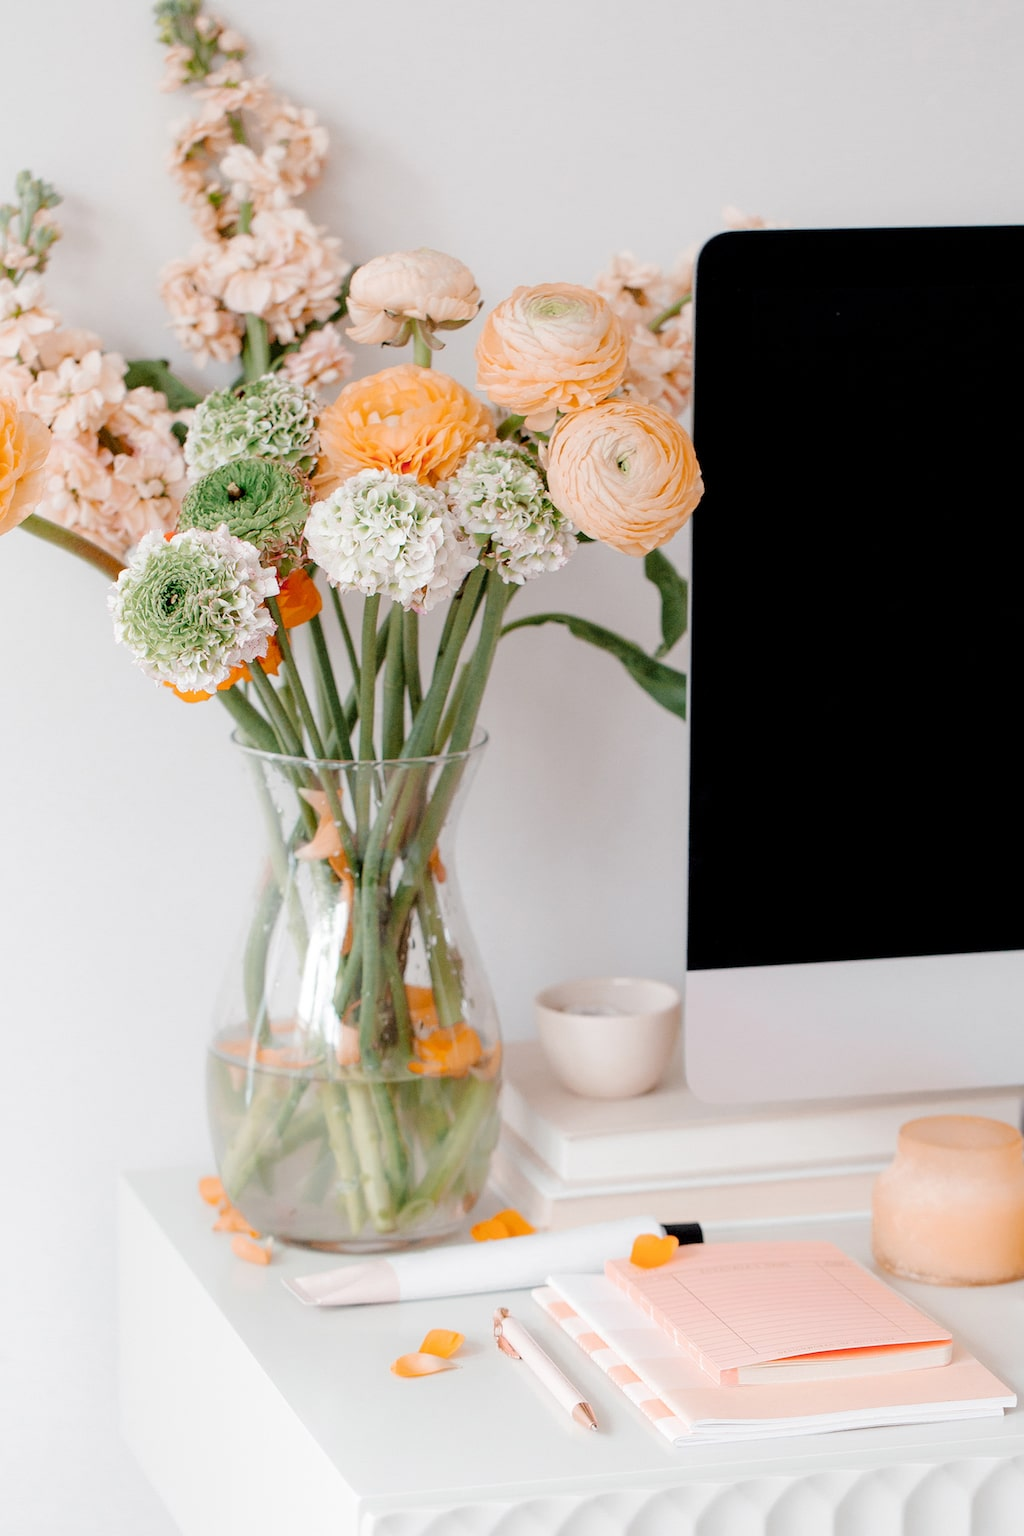 Flowers and computer on a desk